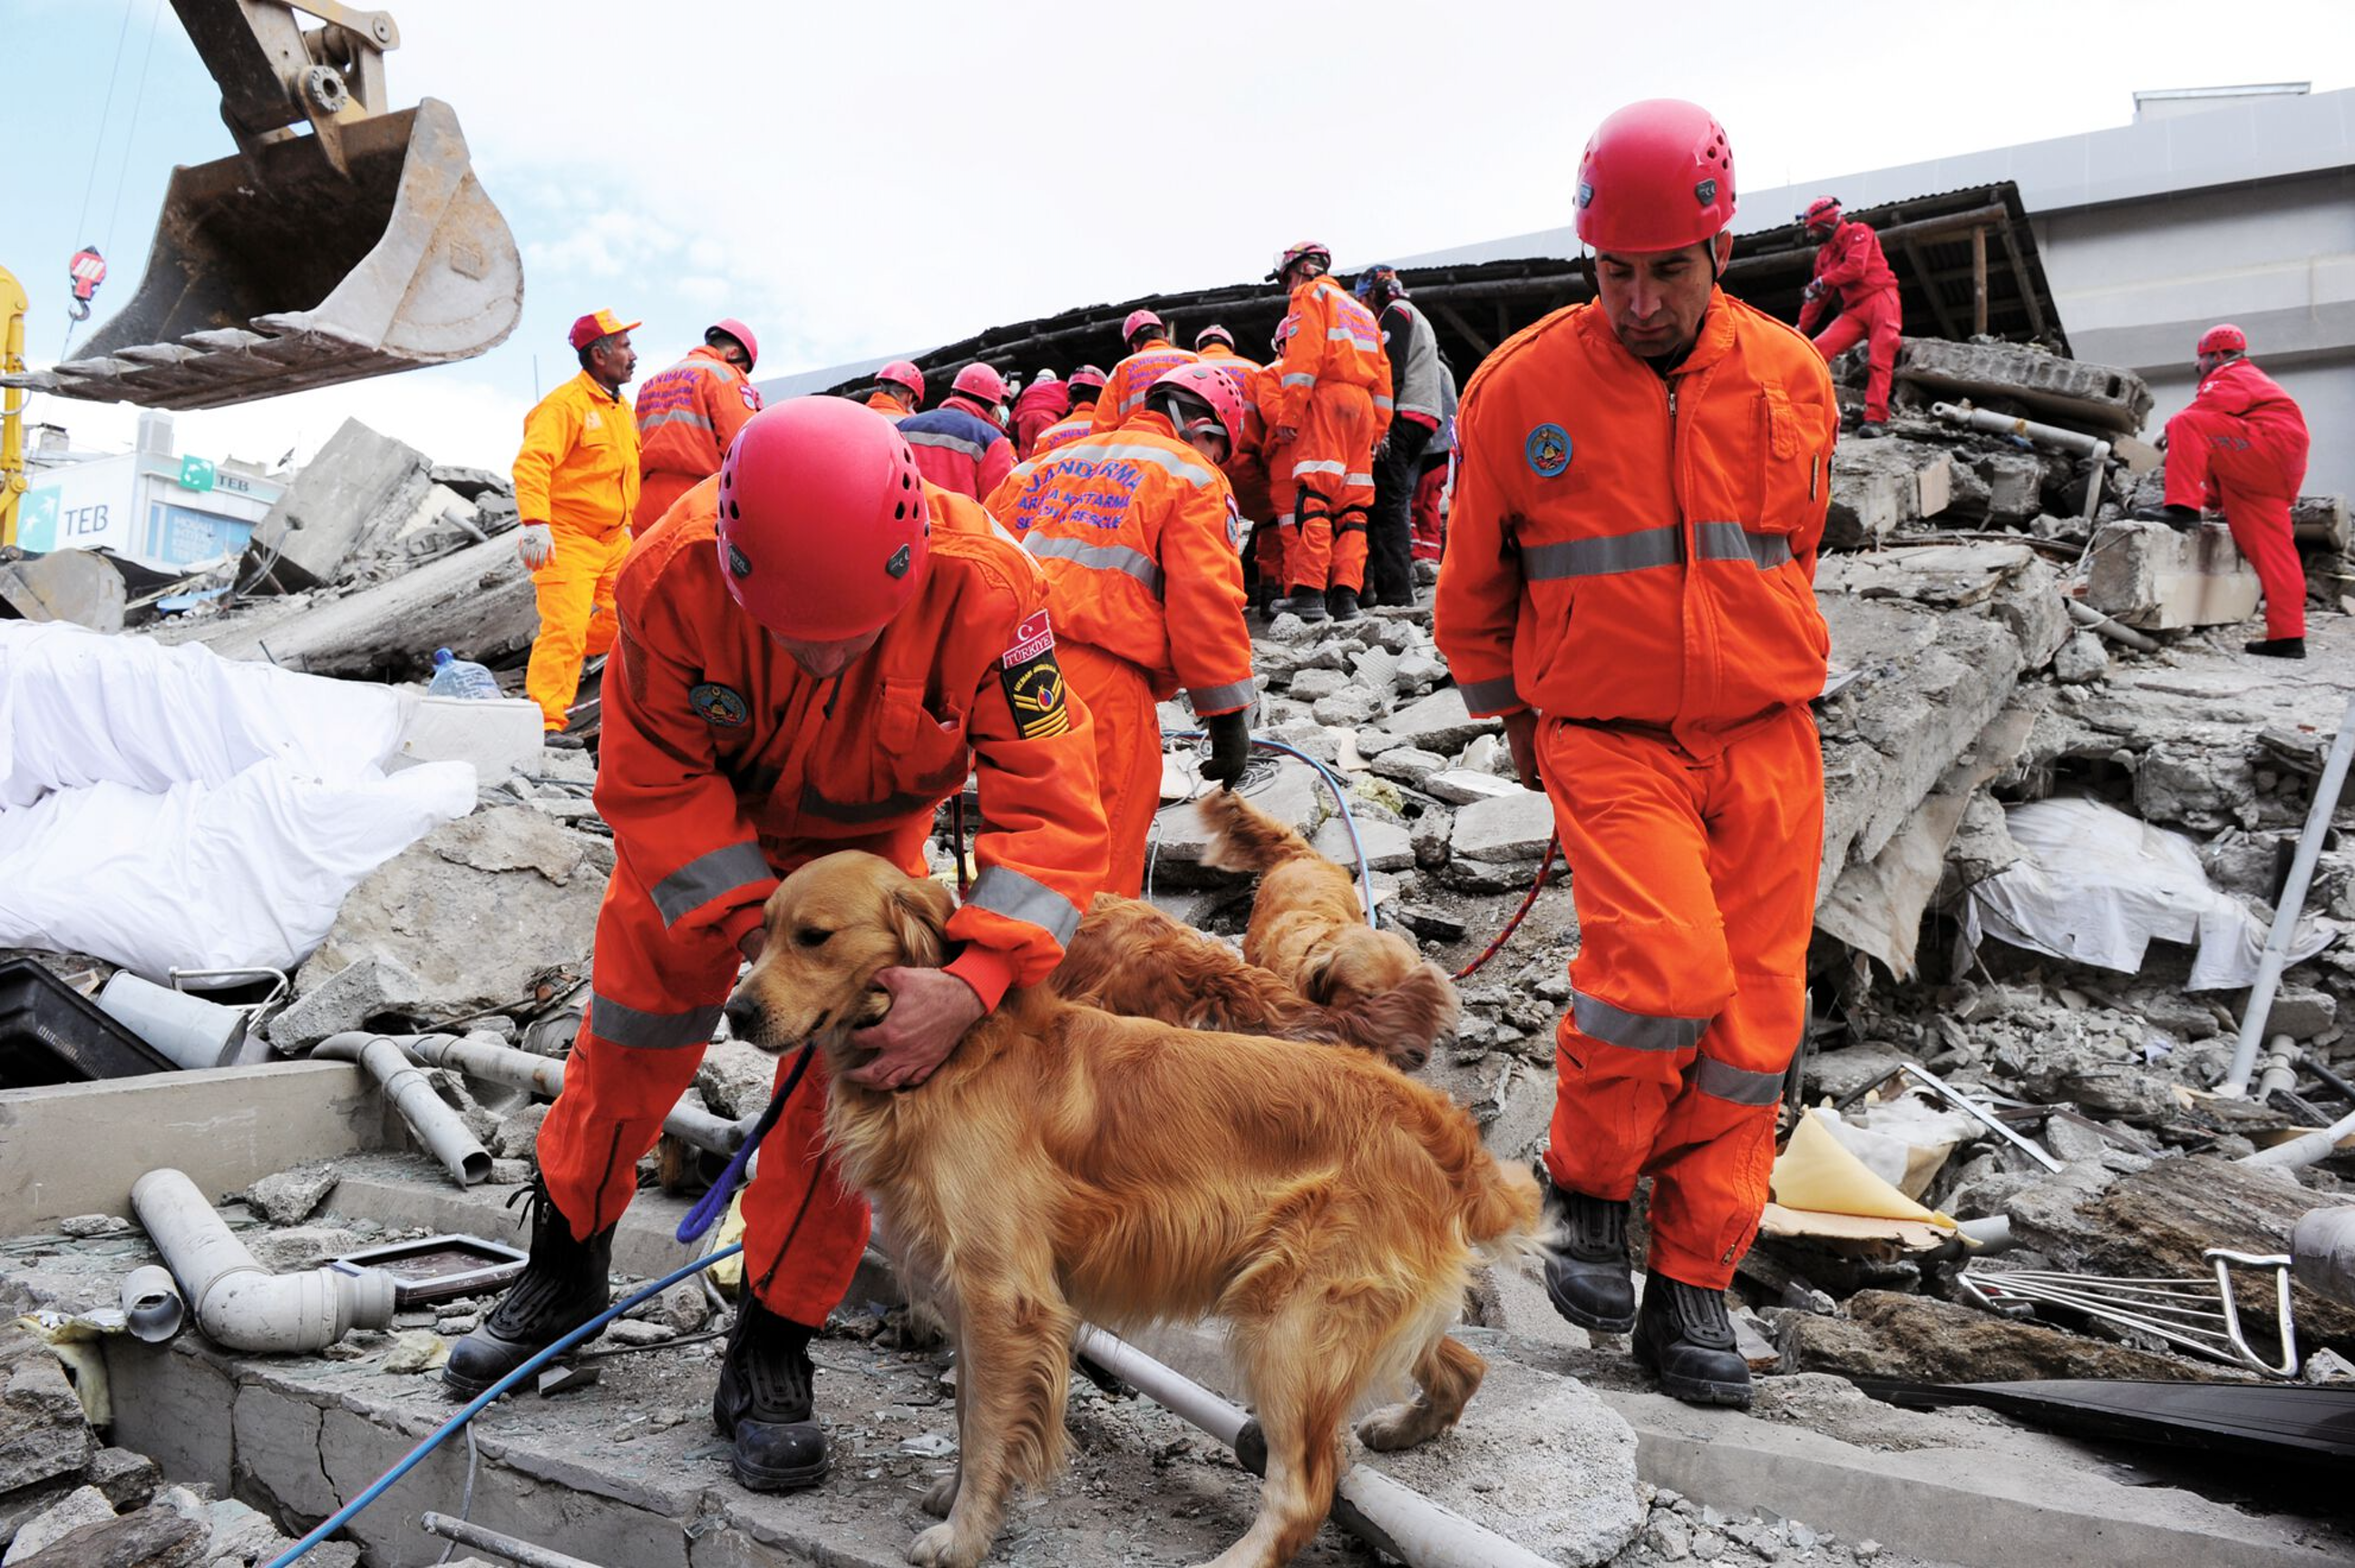 An urban search and rescue dog perches on rubble, representative of the unstable terrain these dogs must navigate.